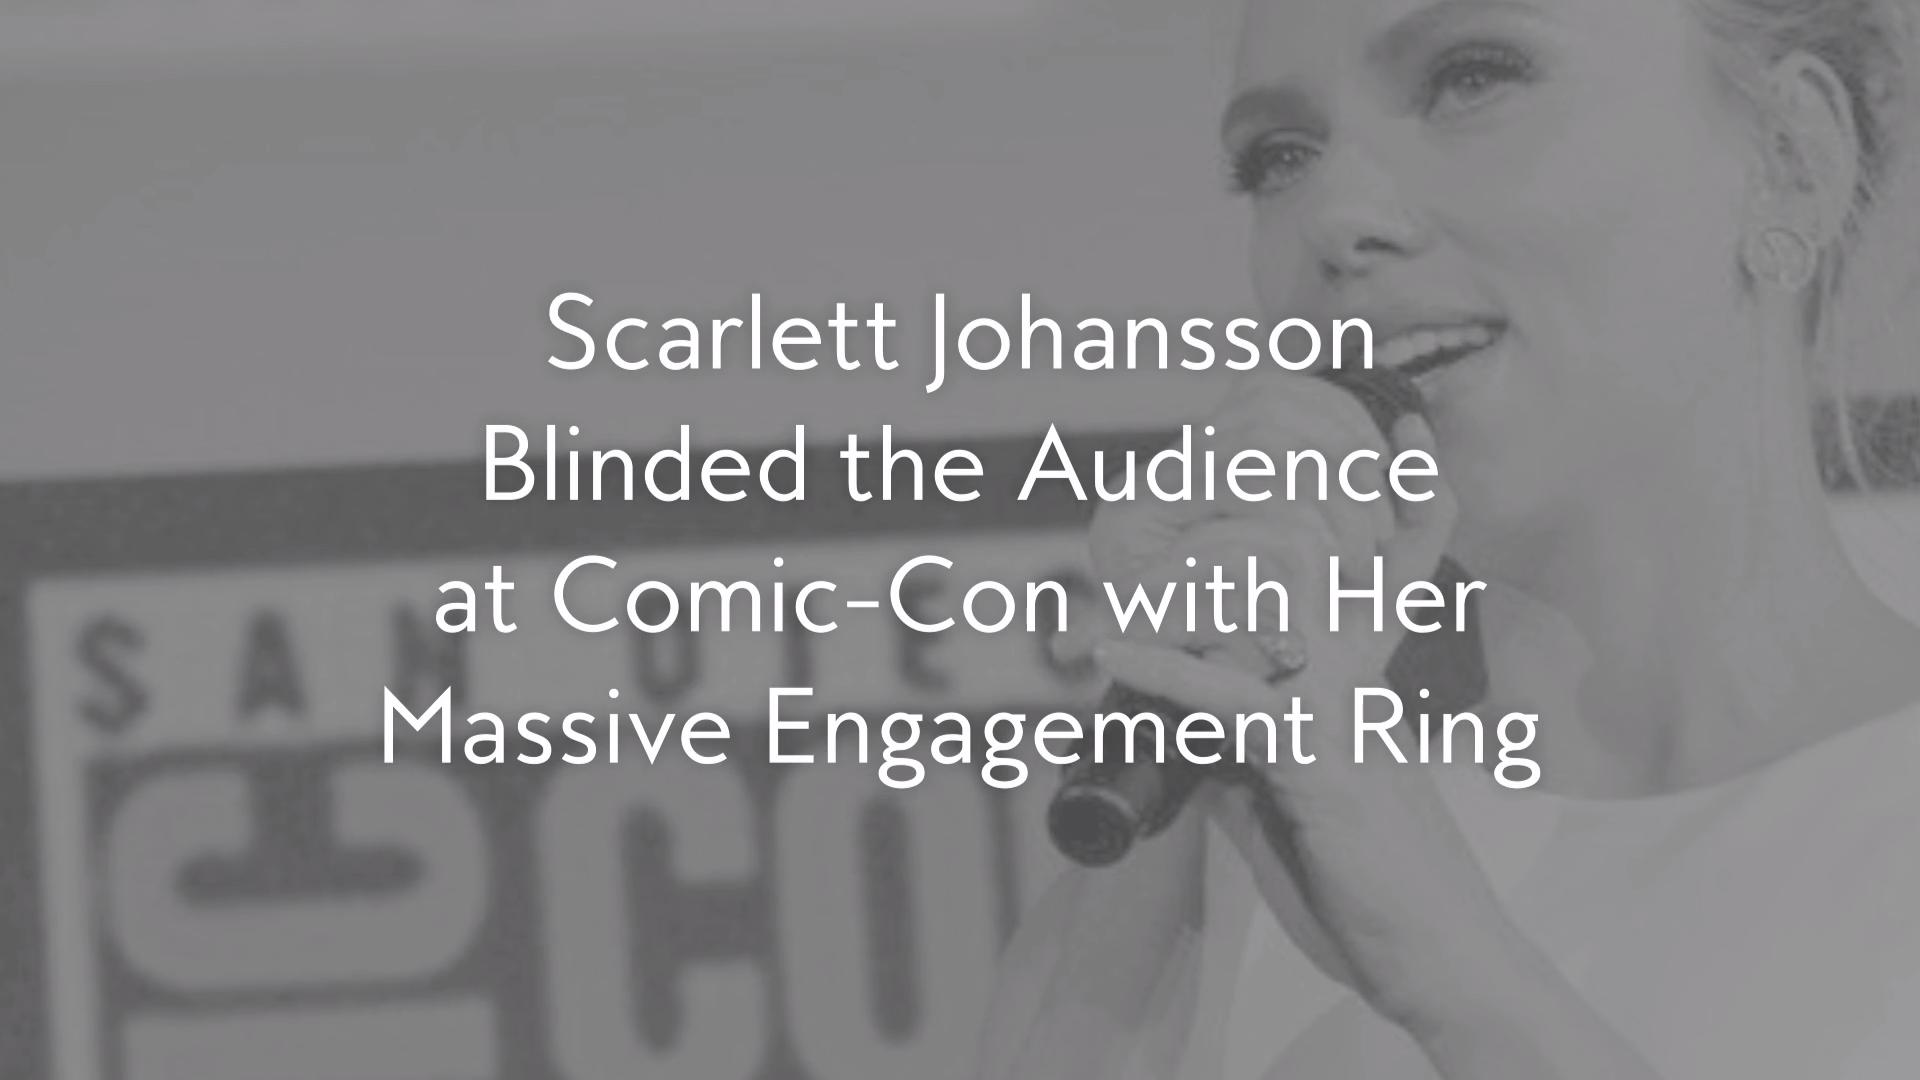 Scarlett Johansson Blinded the Audience at Comic-Con with Her Massive Engagement Ring